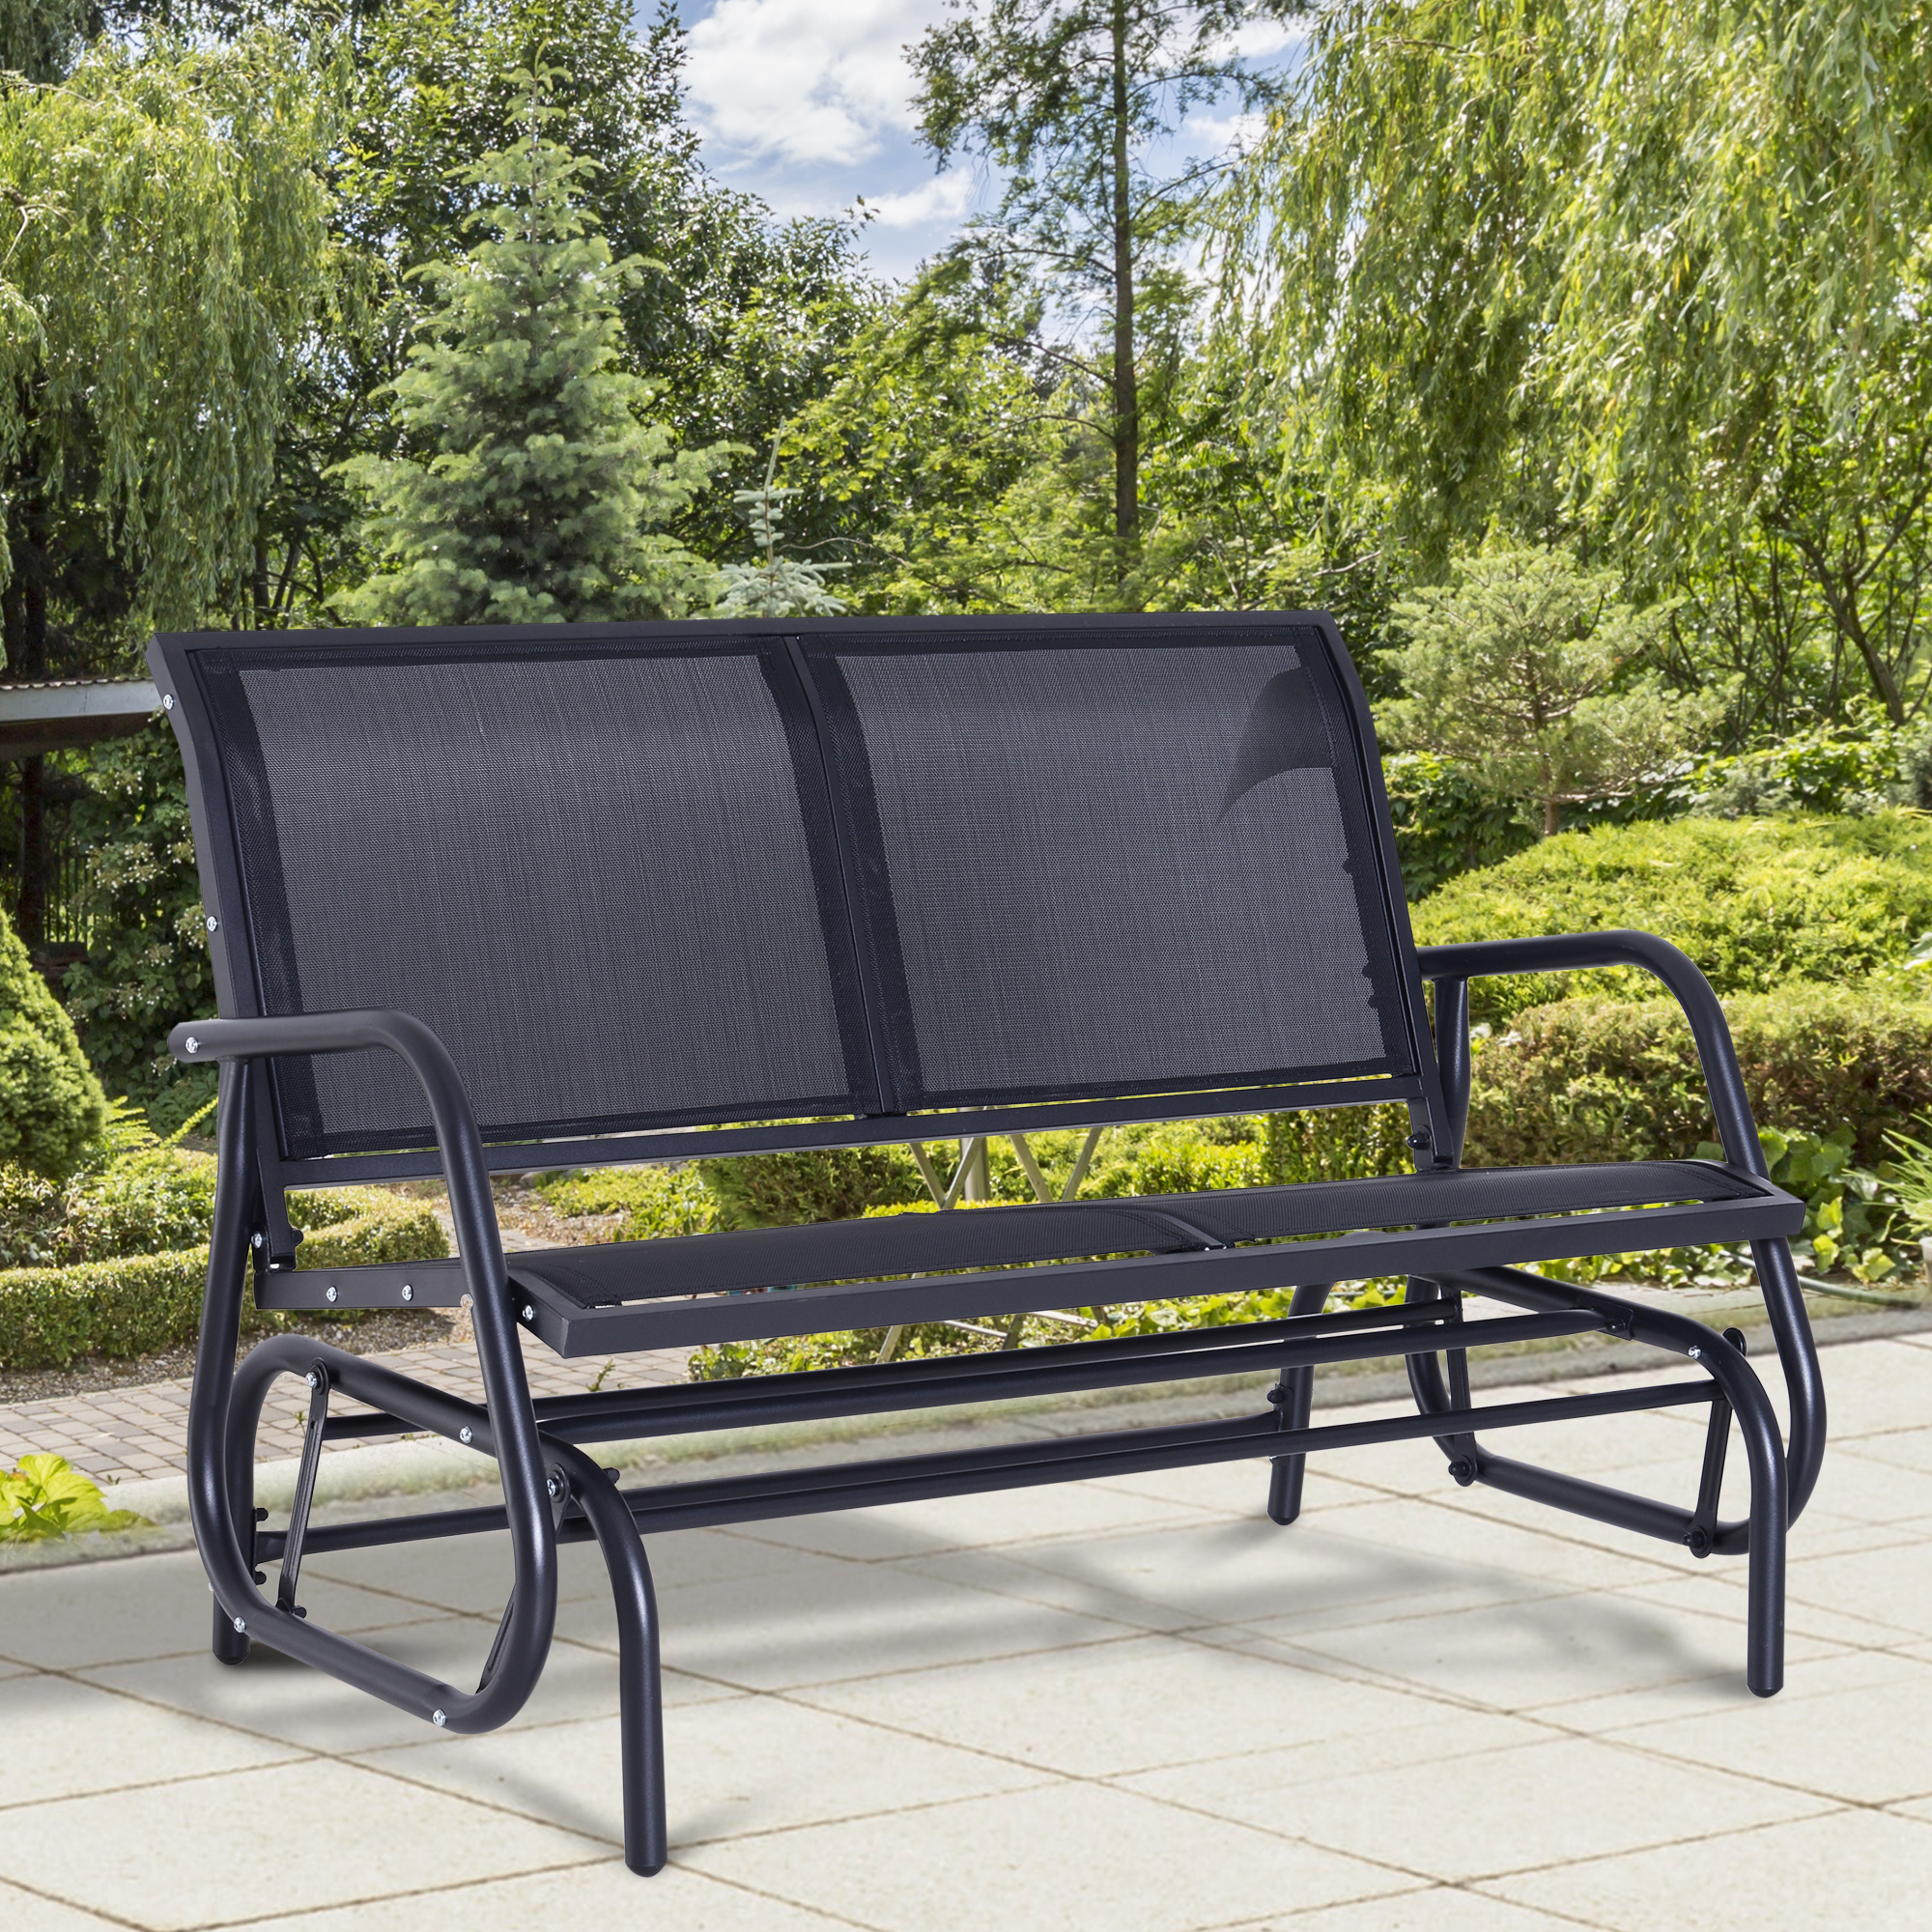 Patio Chairs Swings Benches 2 Person Patio Glider Rocking Bench Double Chair Loveseat Armchair Garden Home Garden